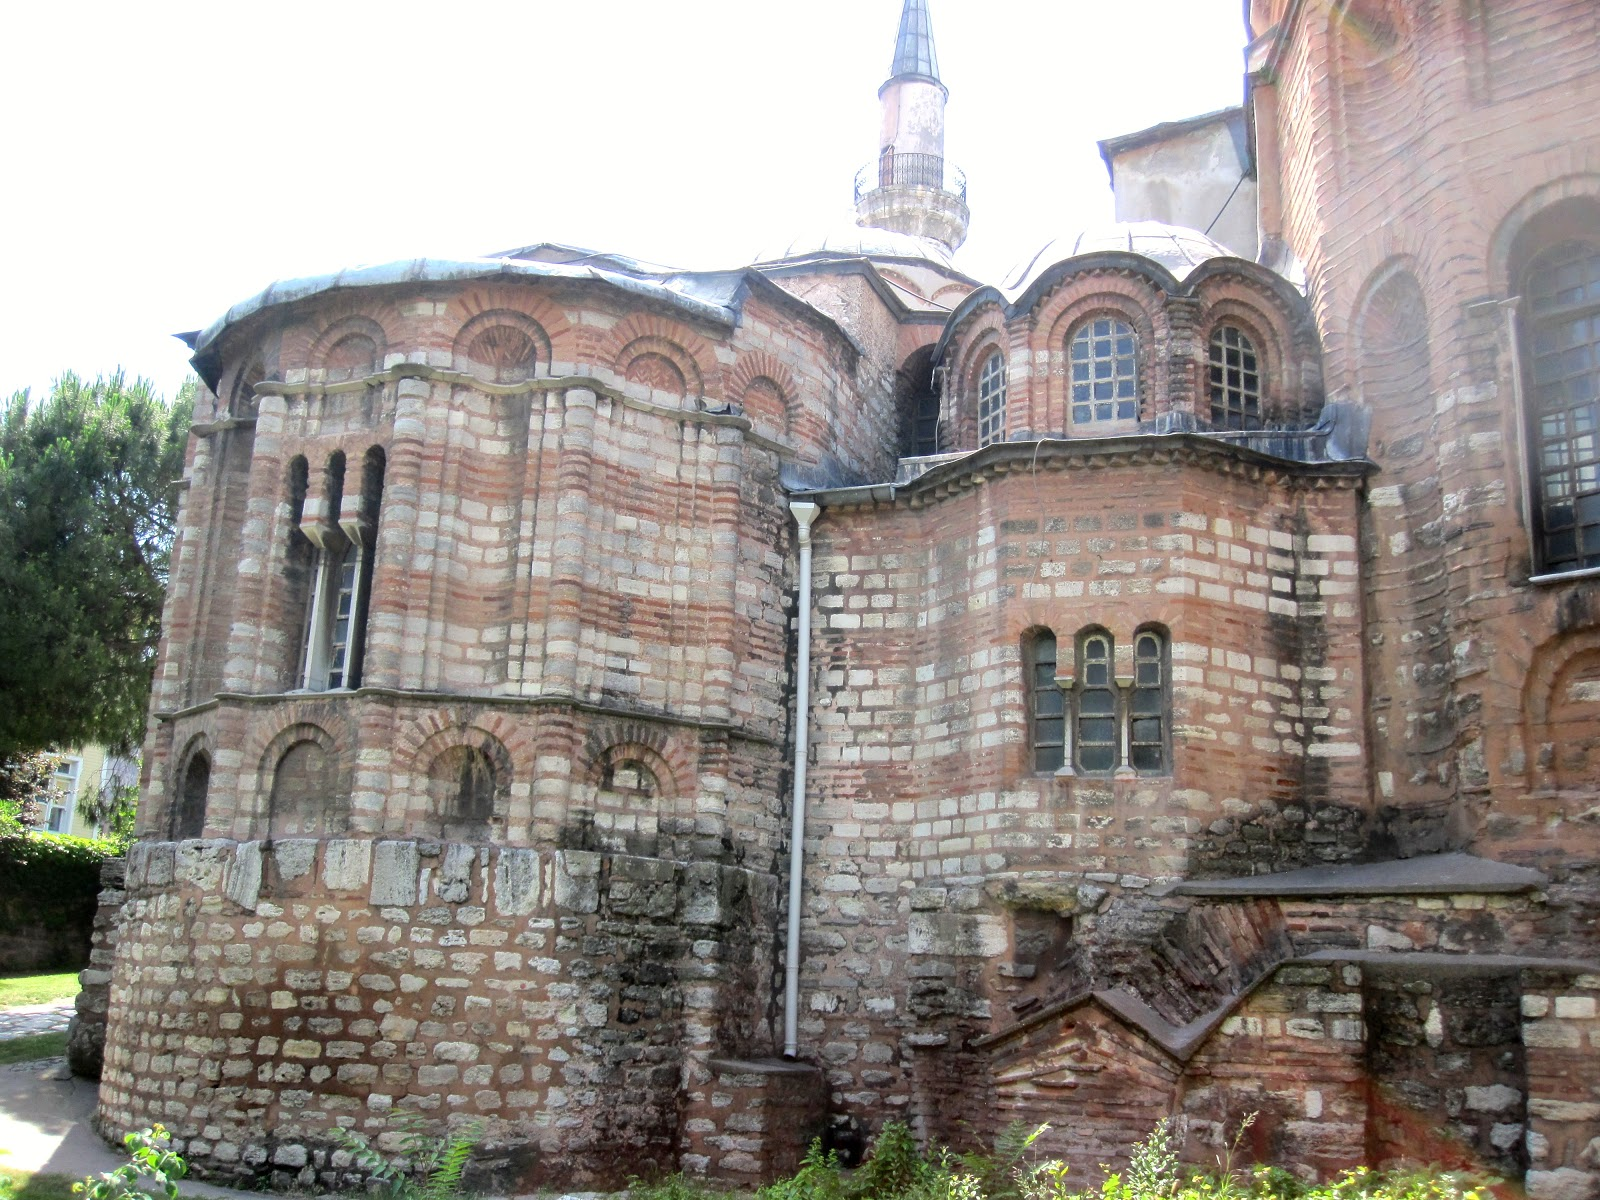 Cannundrums: Chora, Church of the Holy Savior in - Istanbul